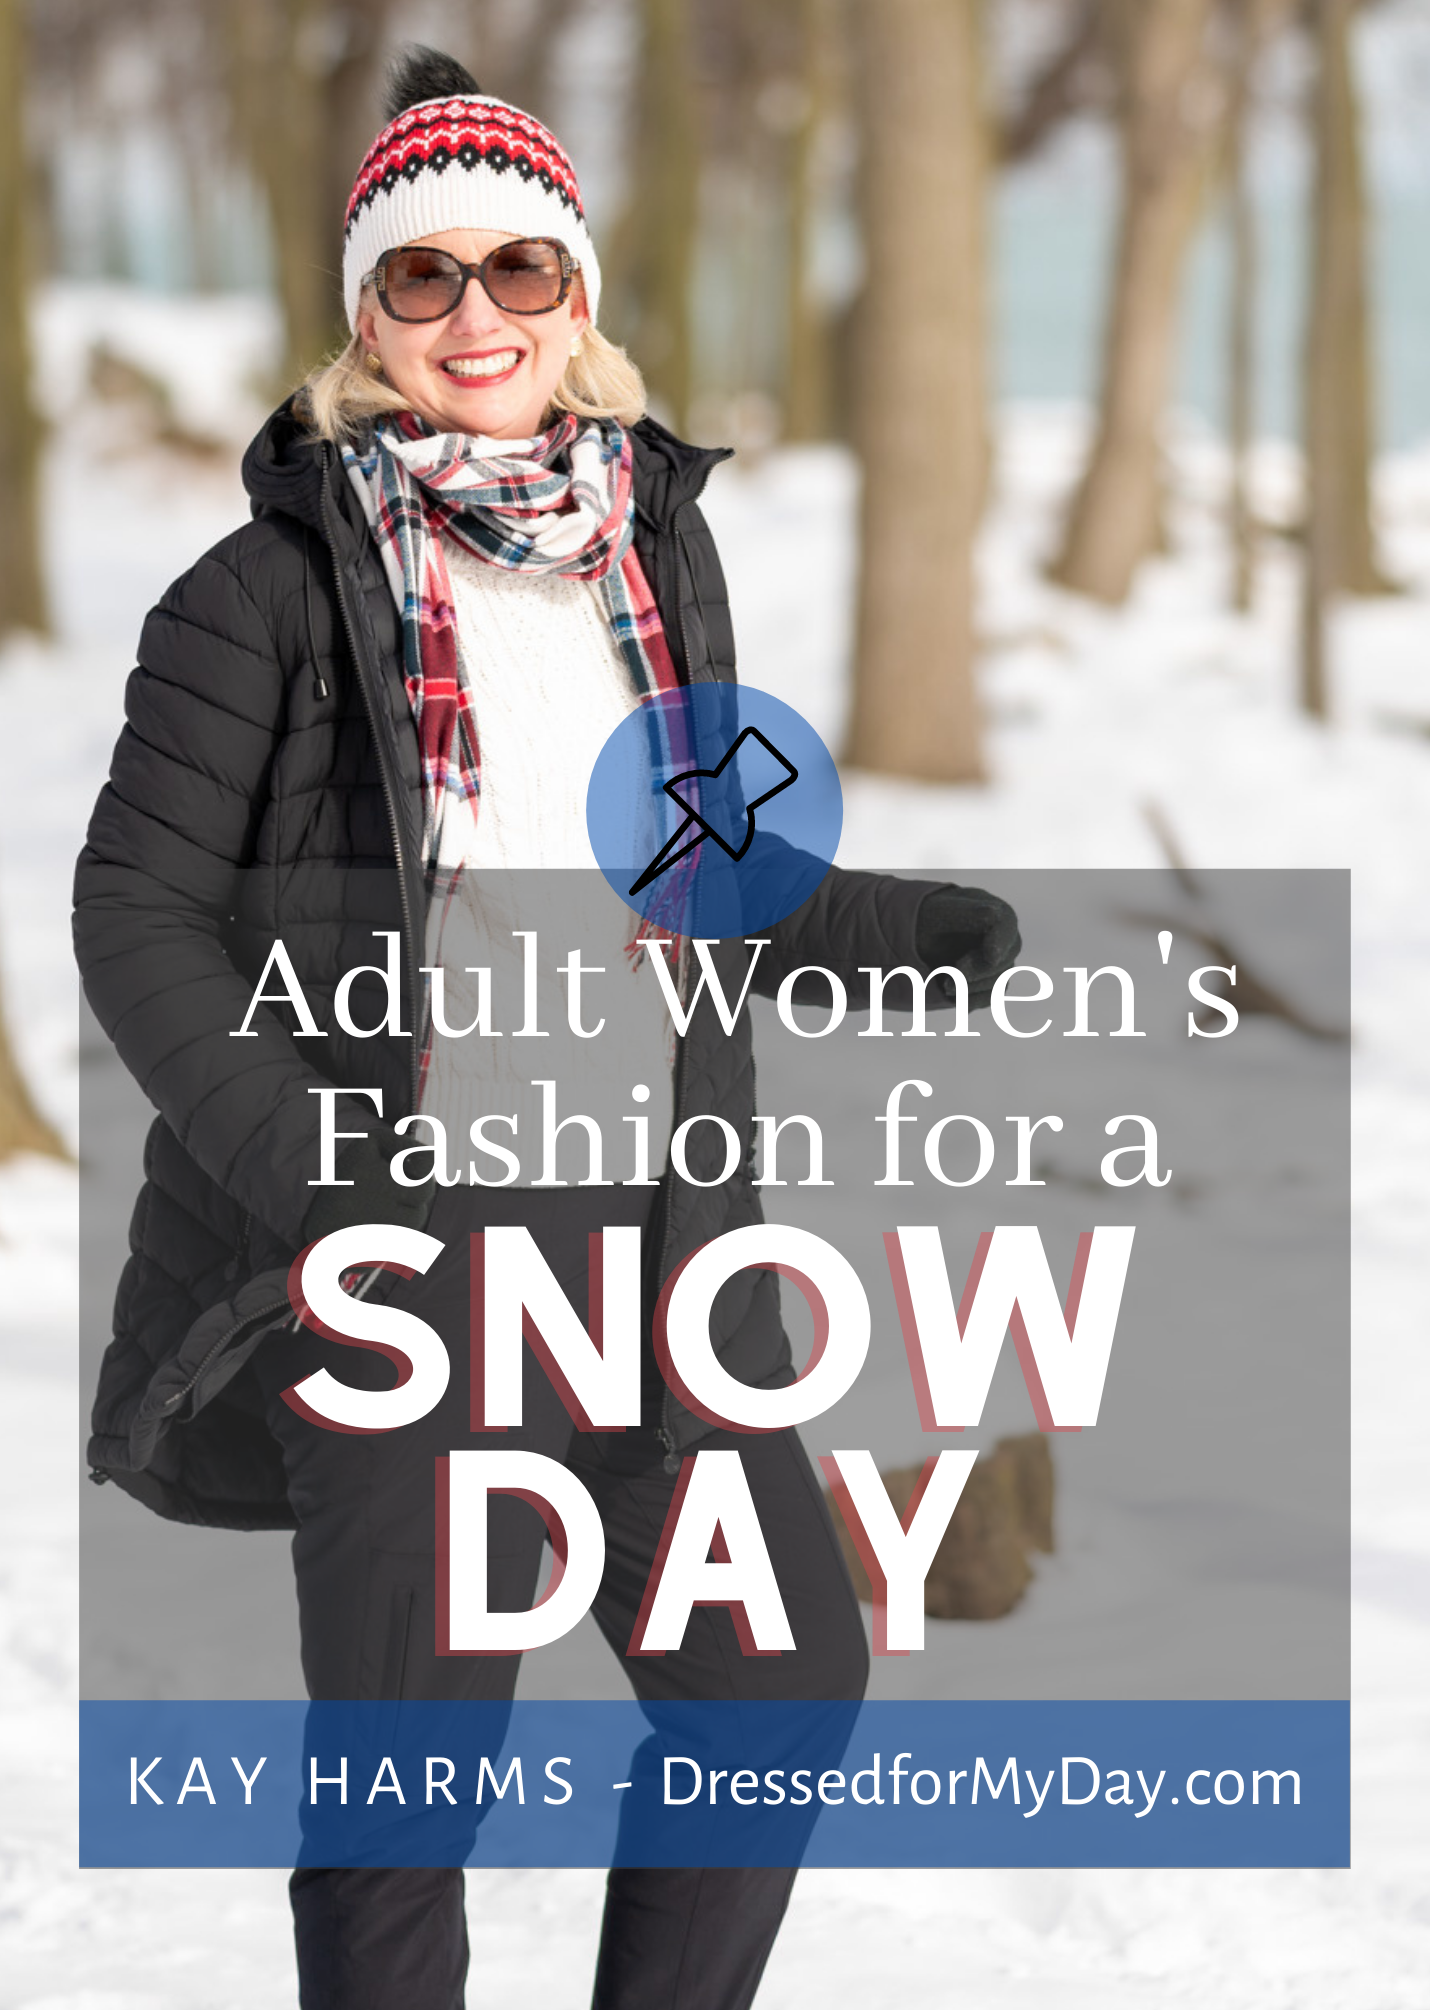 Adult Women's Fashion for a Snow Day